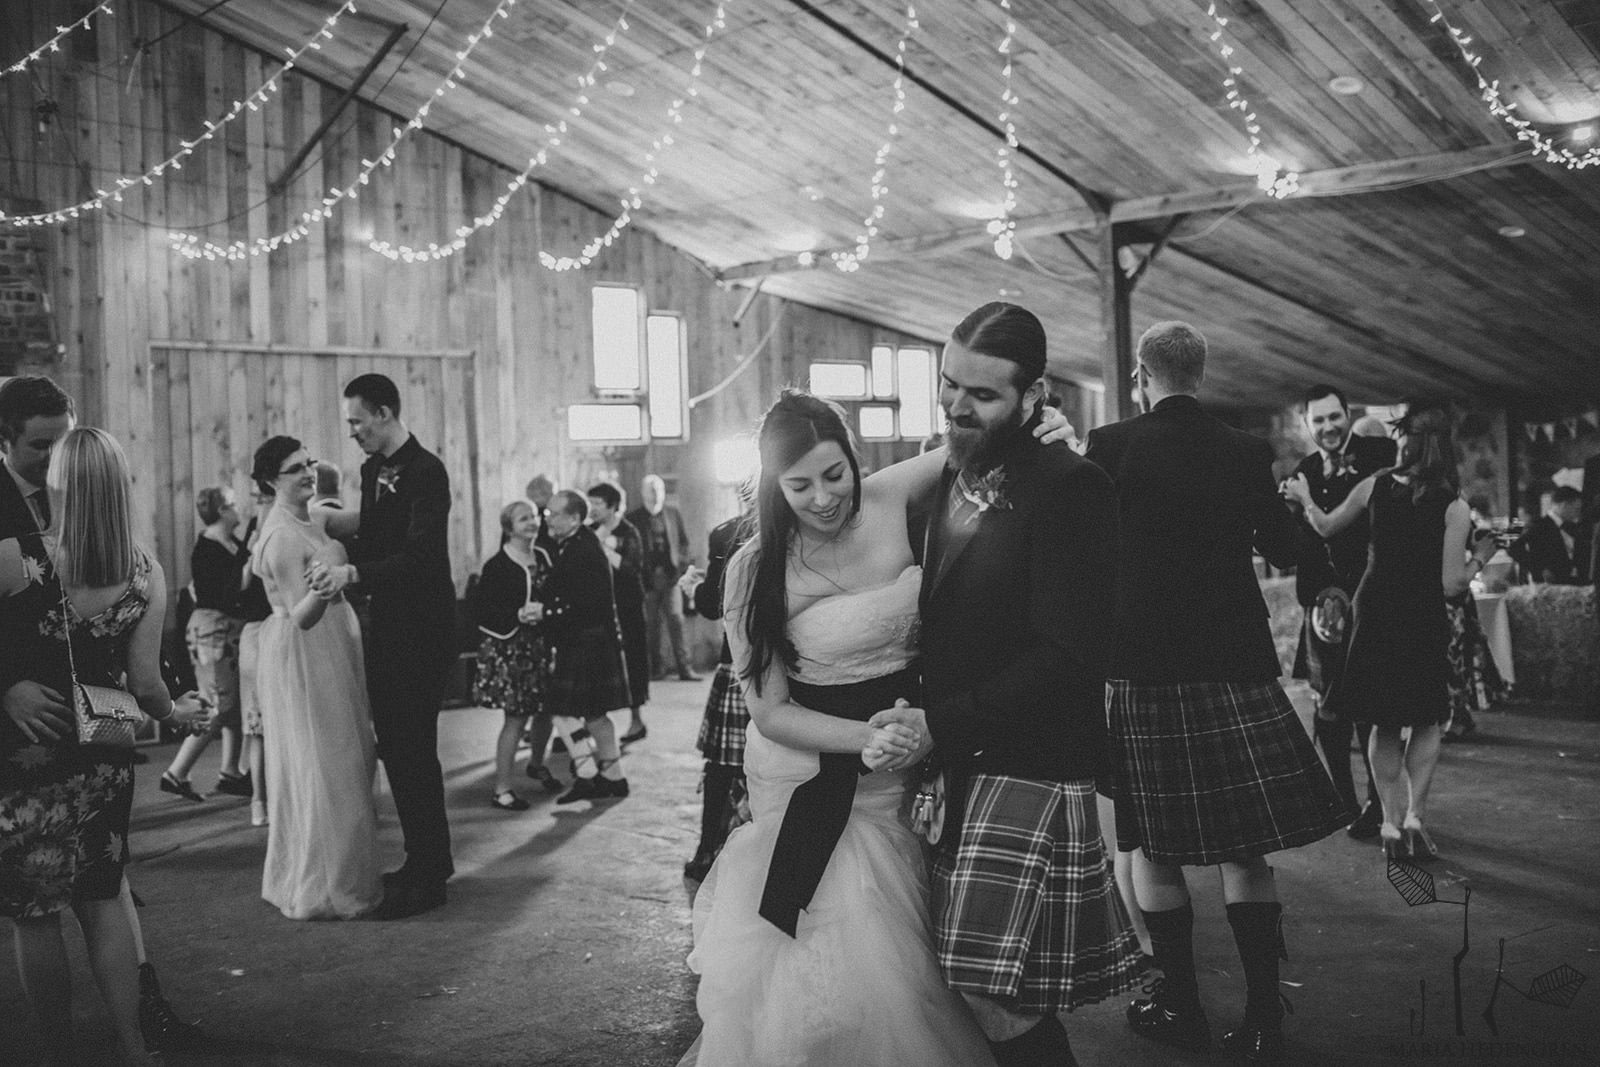 scottish dances